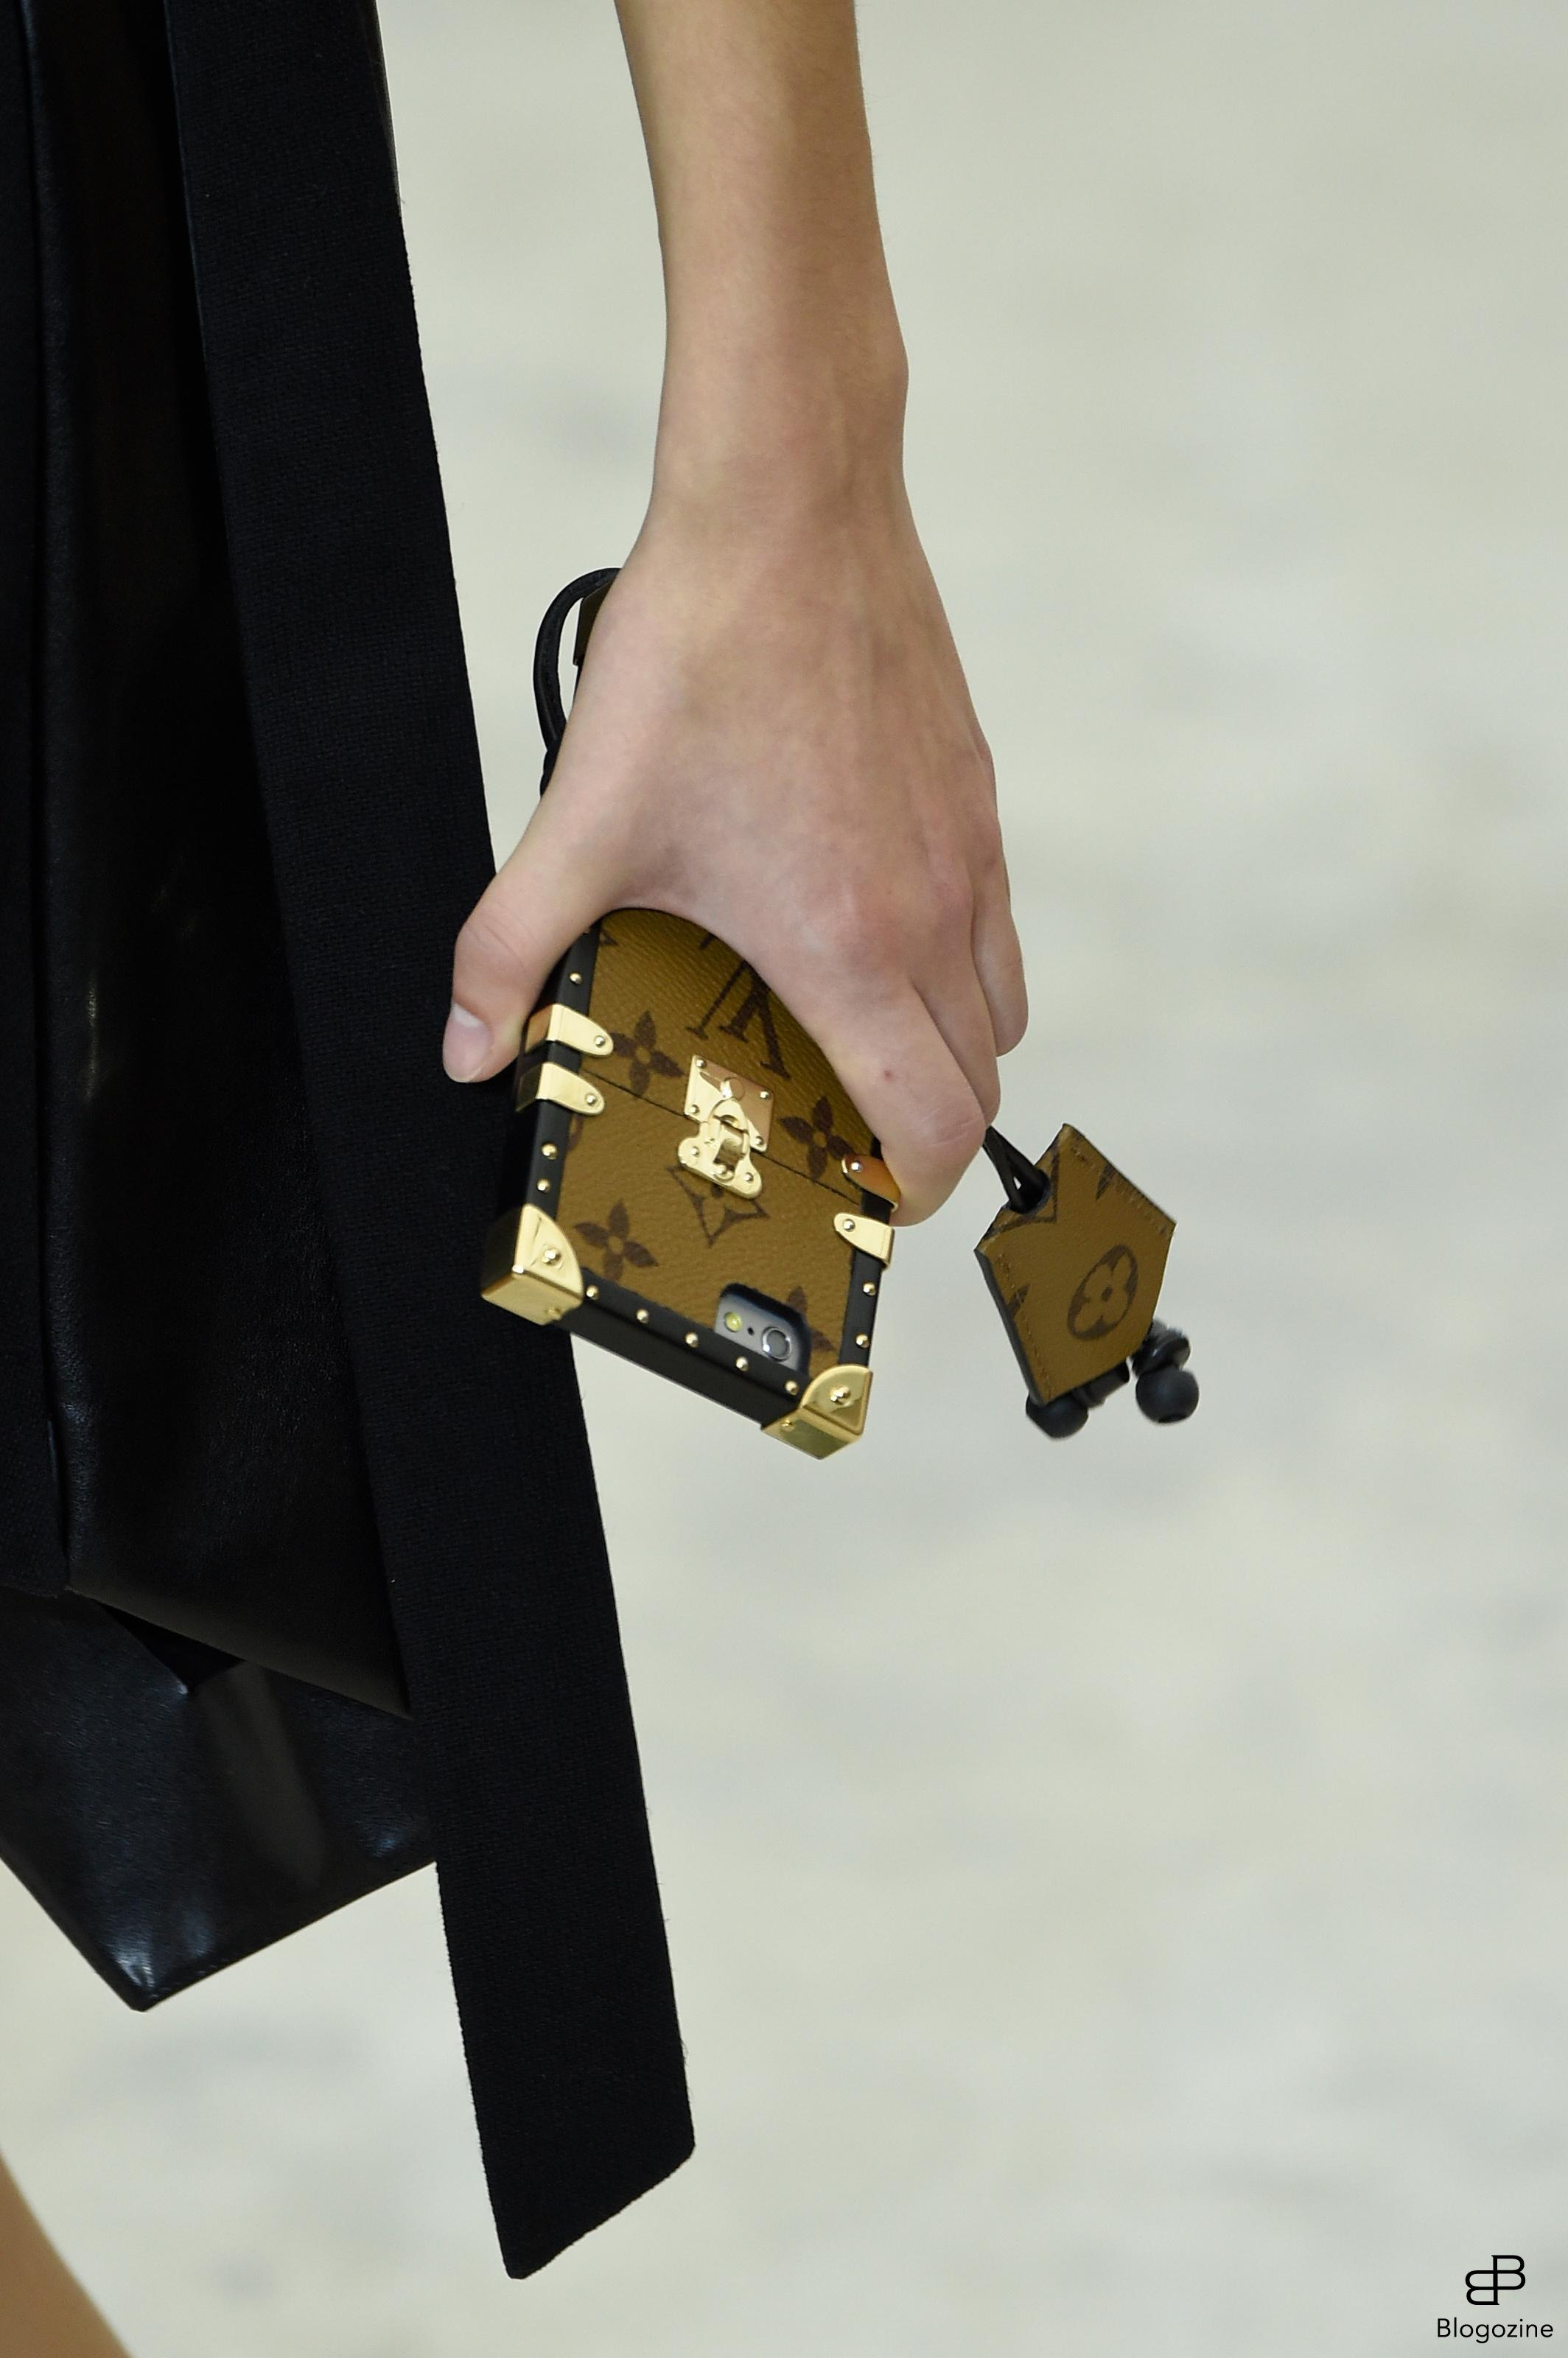 6301326 Details bags and shoes during the Louis Vuitton runway show as a part of Paris Fashion Week Ready to Wear Spring/Summer 2017 on October 4th , 2016 in Paris, France. Photo by Alain Gil Gonzalez/ABACAPRESS.COM COPYRIGHT STELLA PICTURES